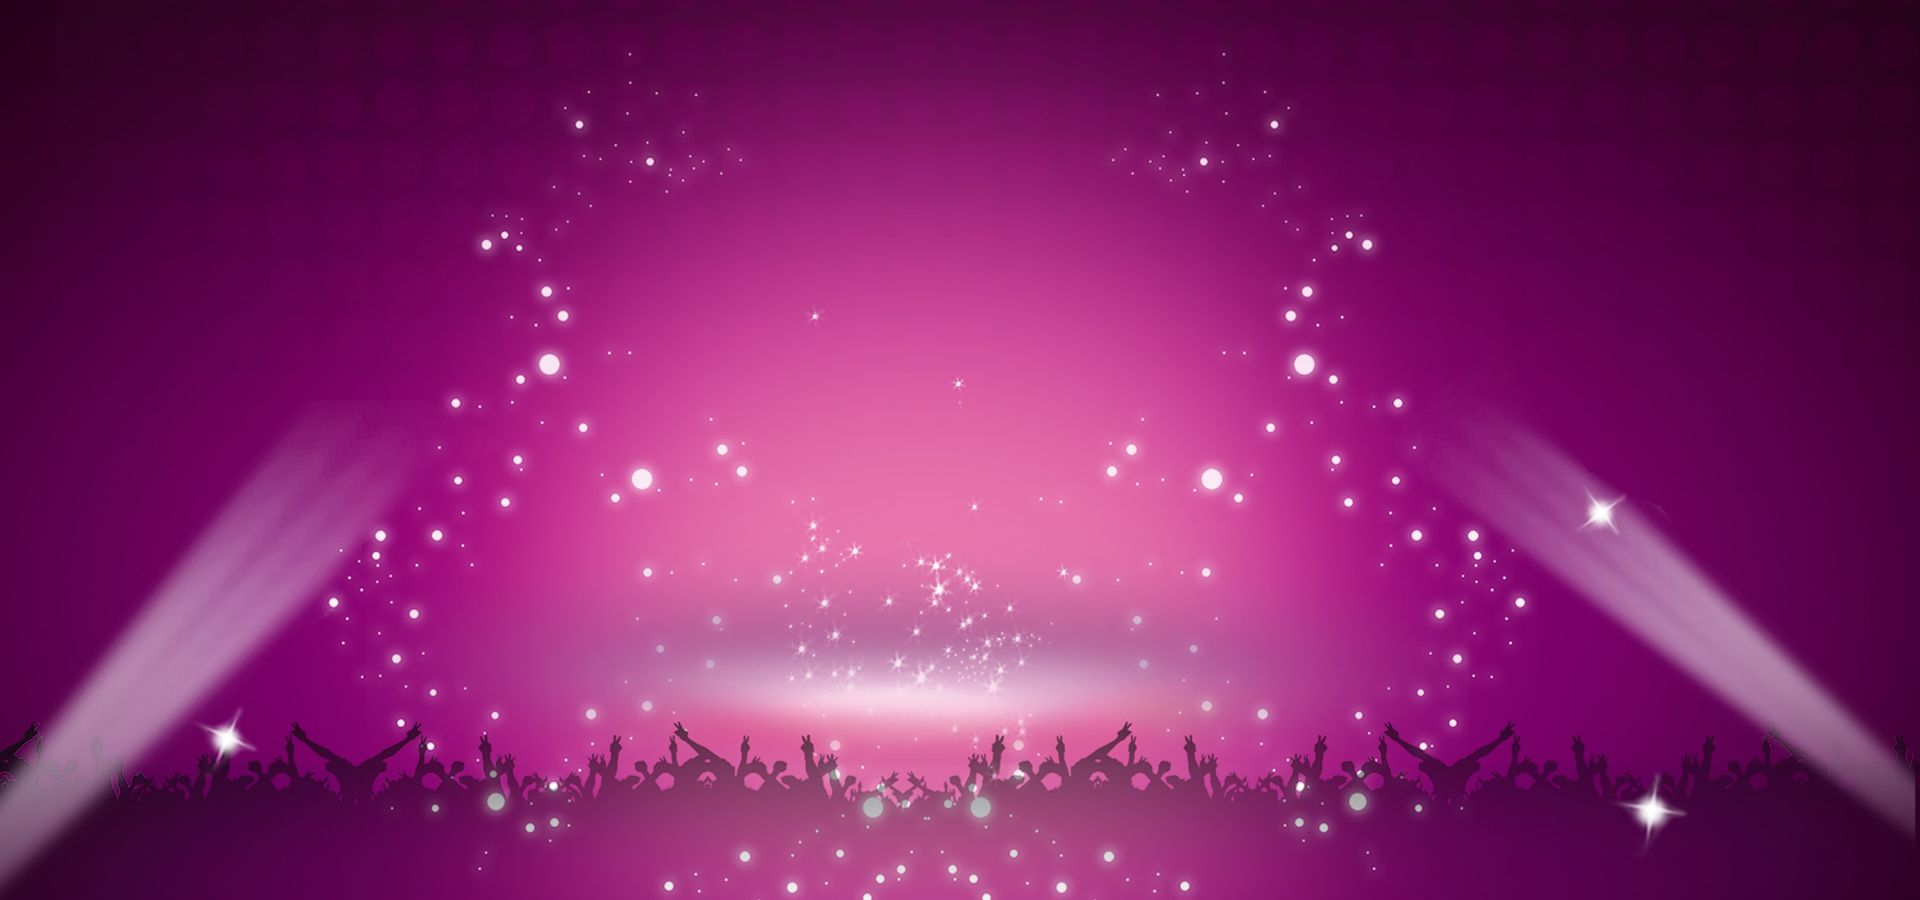 Awards Background In 2019 Background Images Purple